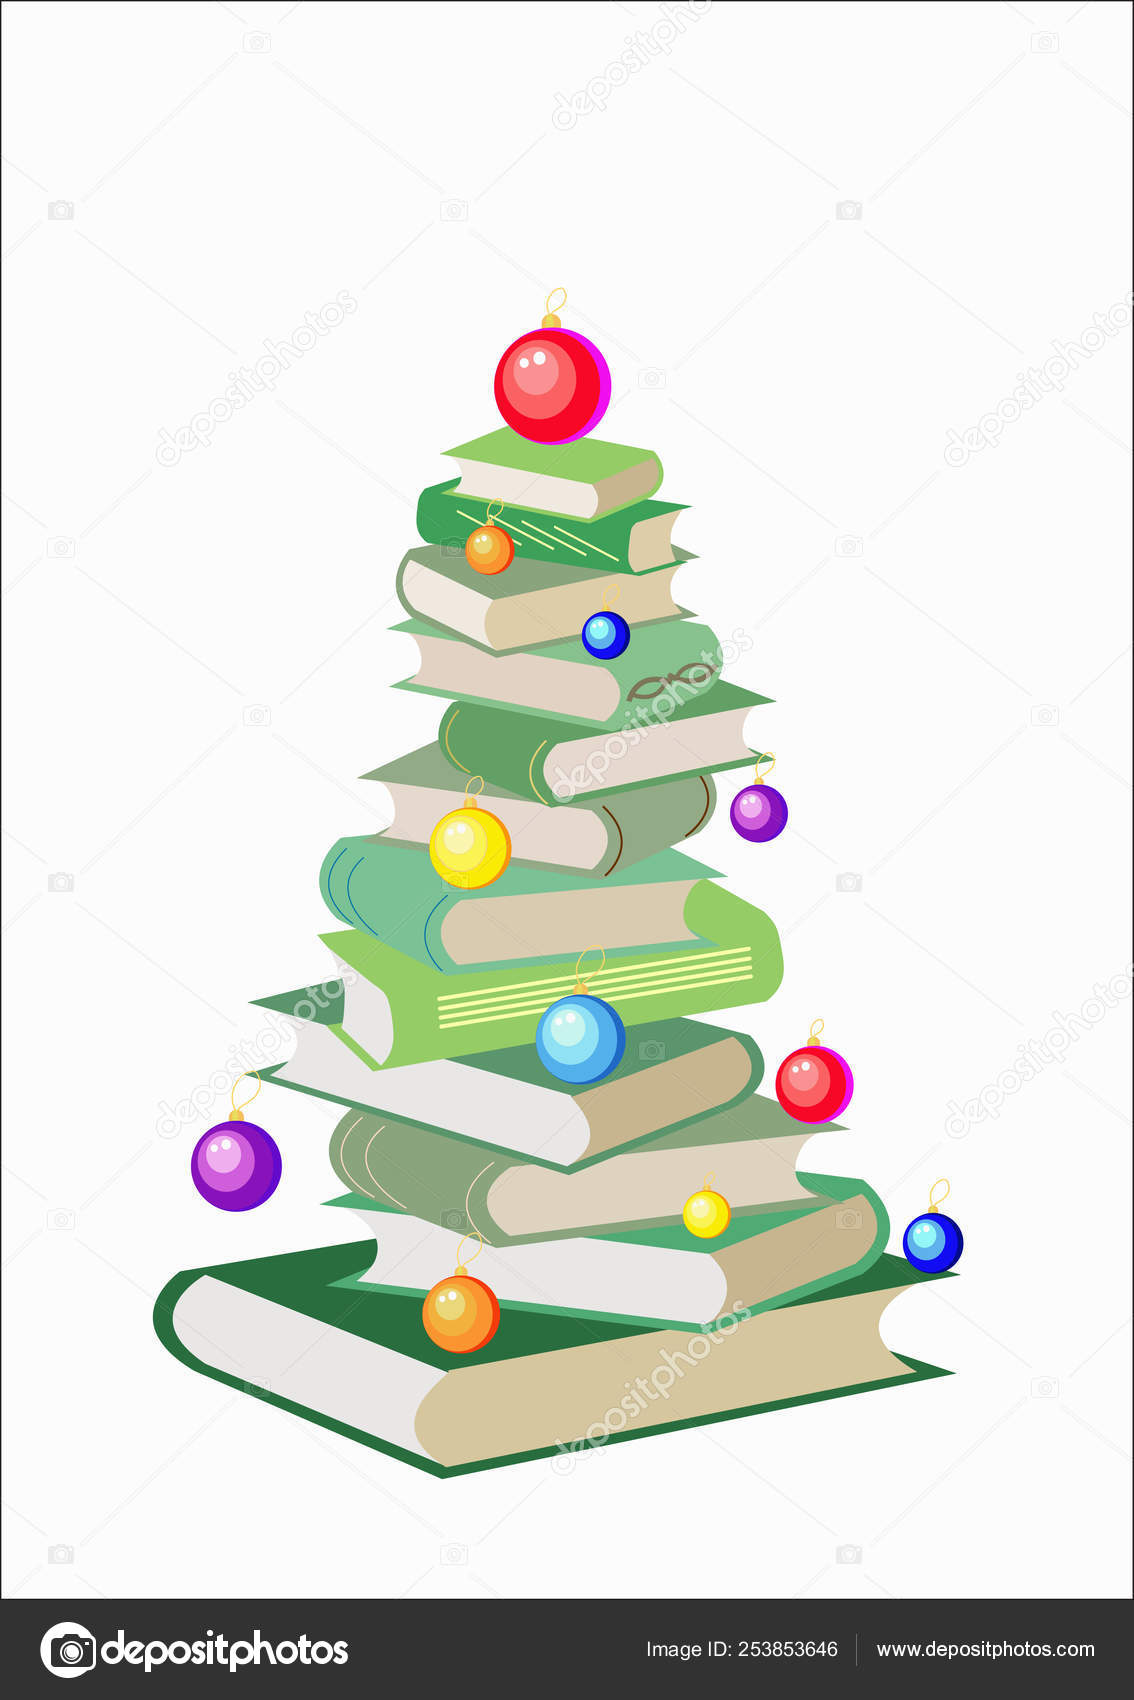 Vector Christmas Tree Made From Colorful Books Decorated With Balls Isolated White Background Cartoon X Mas Illustration Cute Bright Pile Of Books Home Library Happy Education Stock Photo C Lana U 253853646 Free christmas tree cartoons vector download in ai, svg, eps and cdr. vector christmas tree made from colorful books decorated with balls isolated white background cartoon x mas illustration cute bright pile of books home library happy education stock photo c lana u 253853646